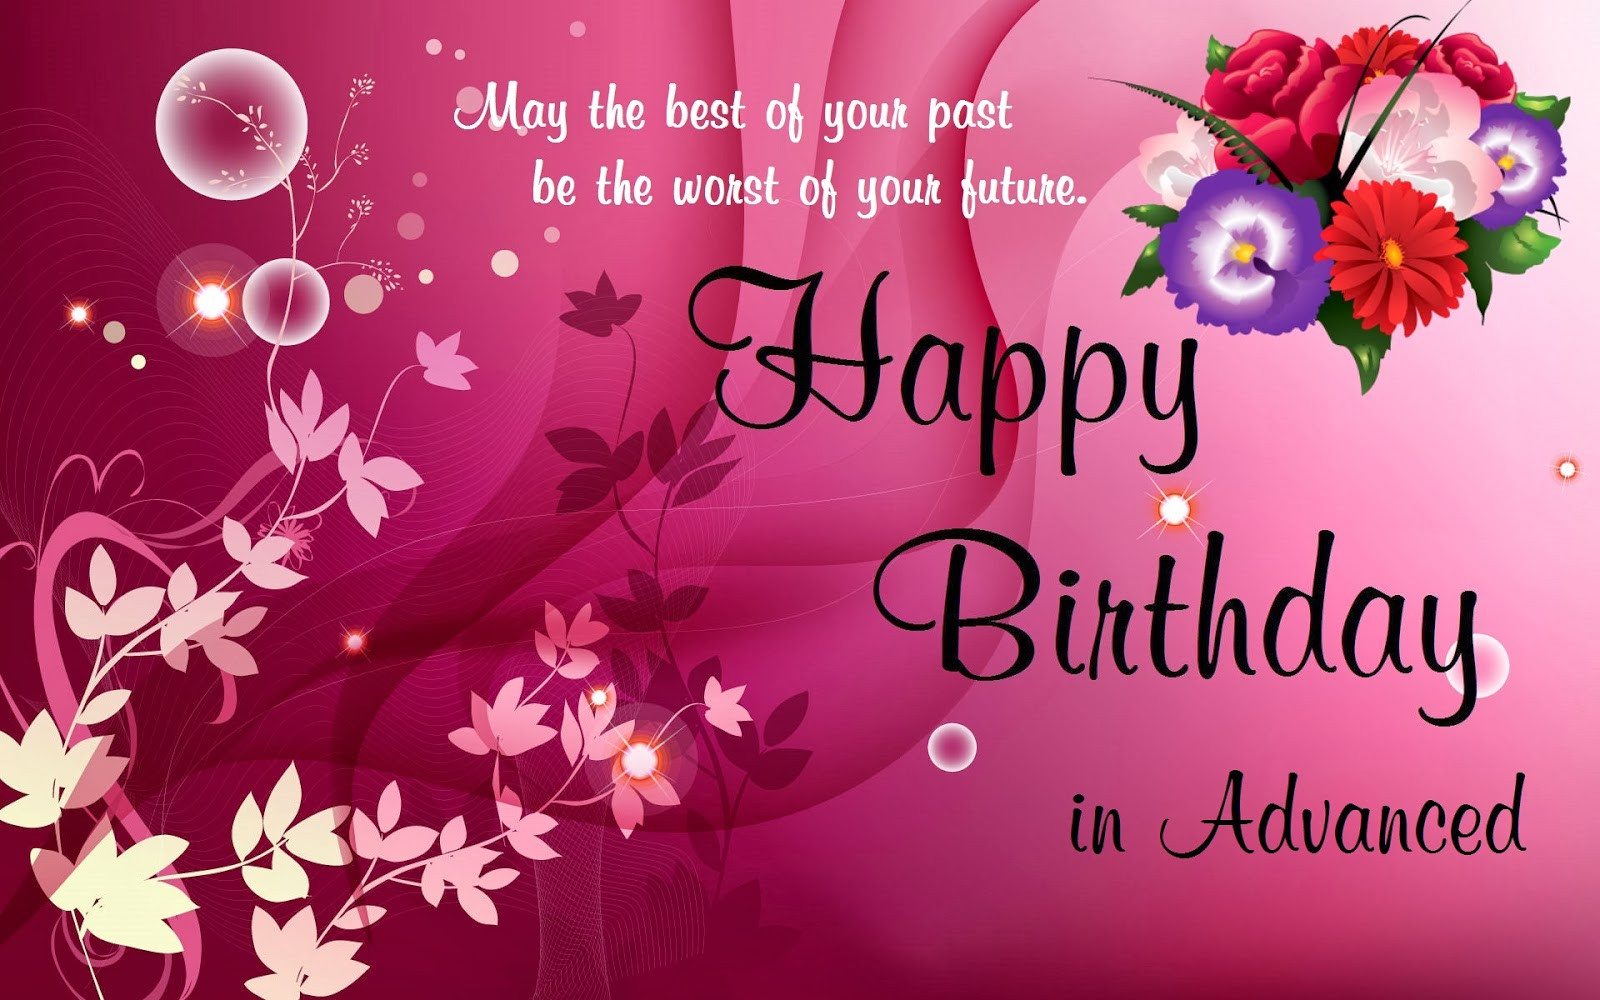 Best ideas about Birthday Wishes Messages . Save or Pin Happy Birthday Messages for Friends and Family Birthday Now.